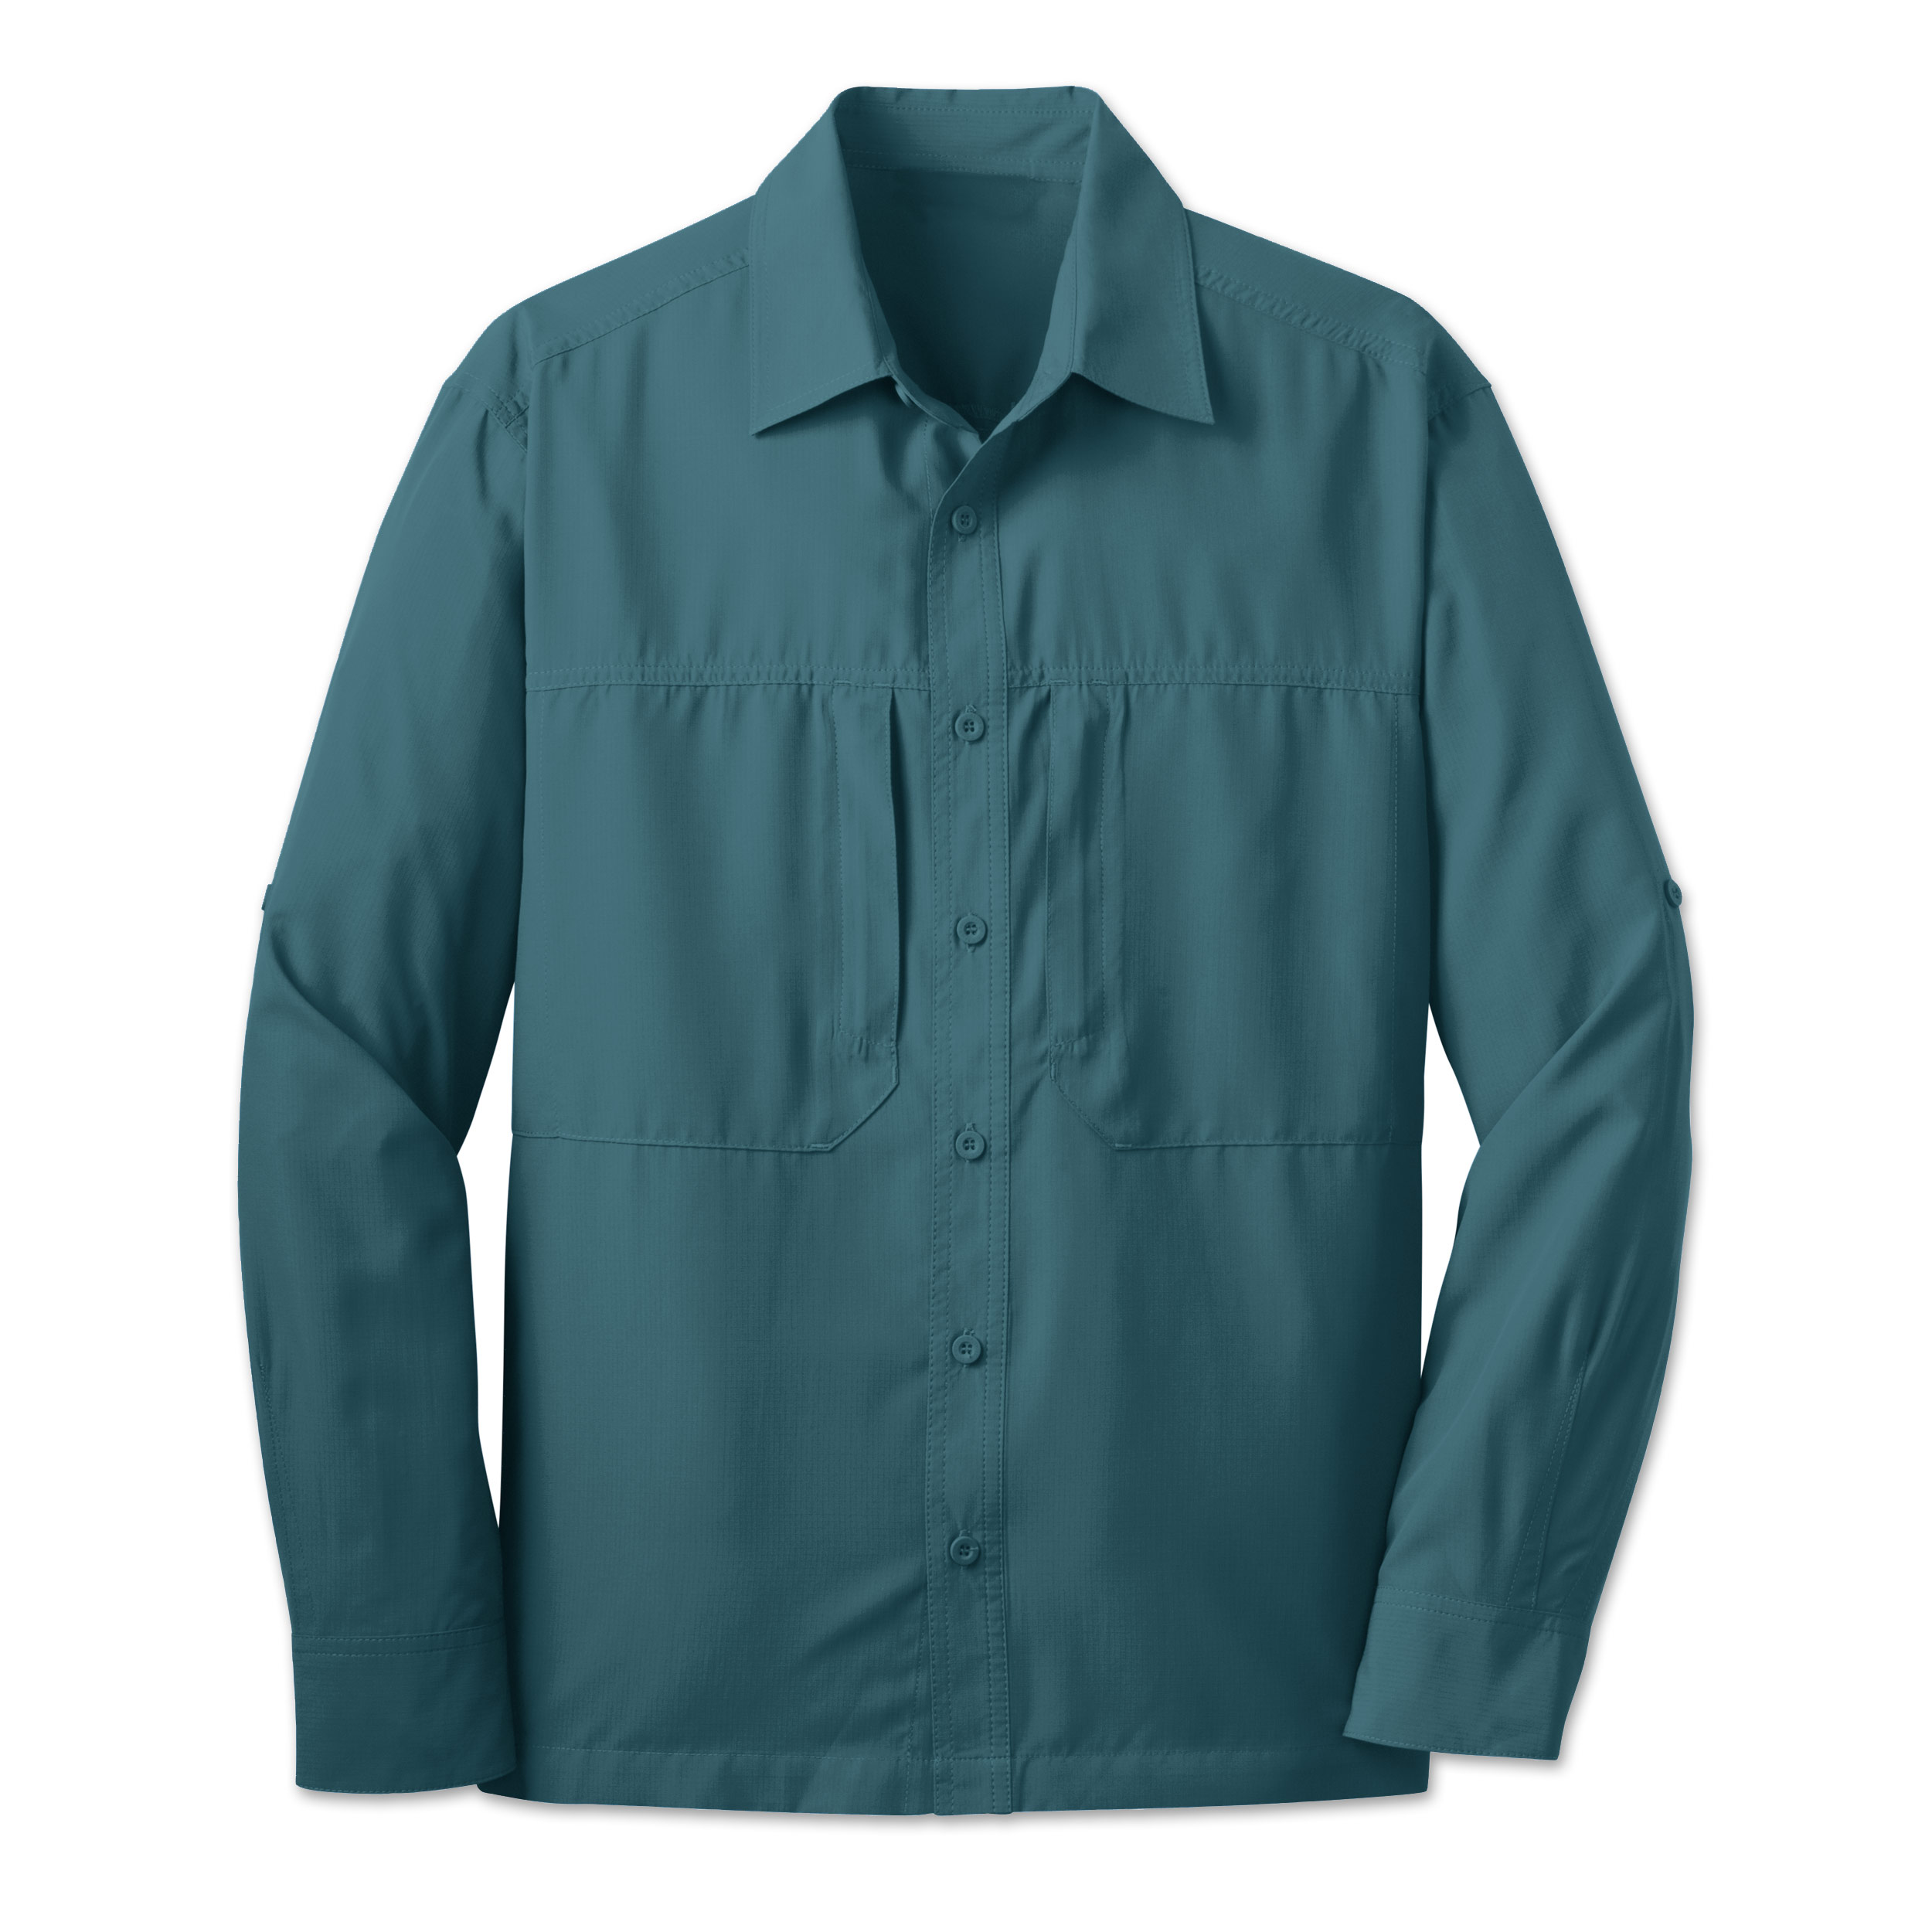 Men's Performance Travel Shirt